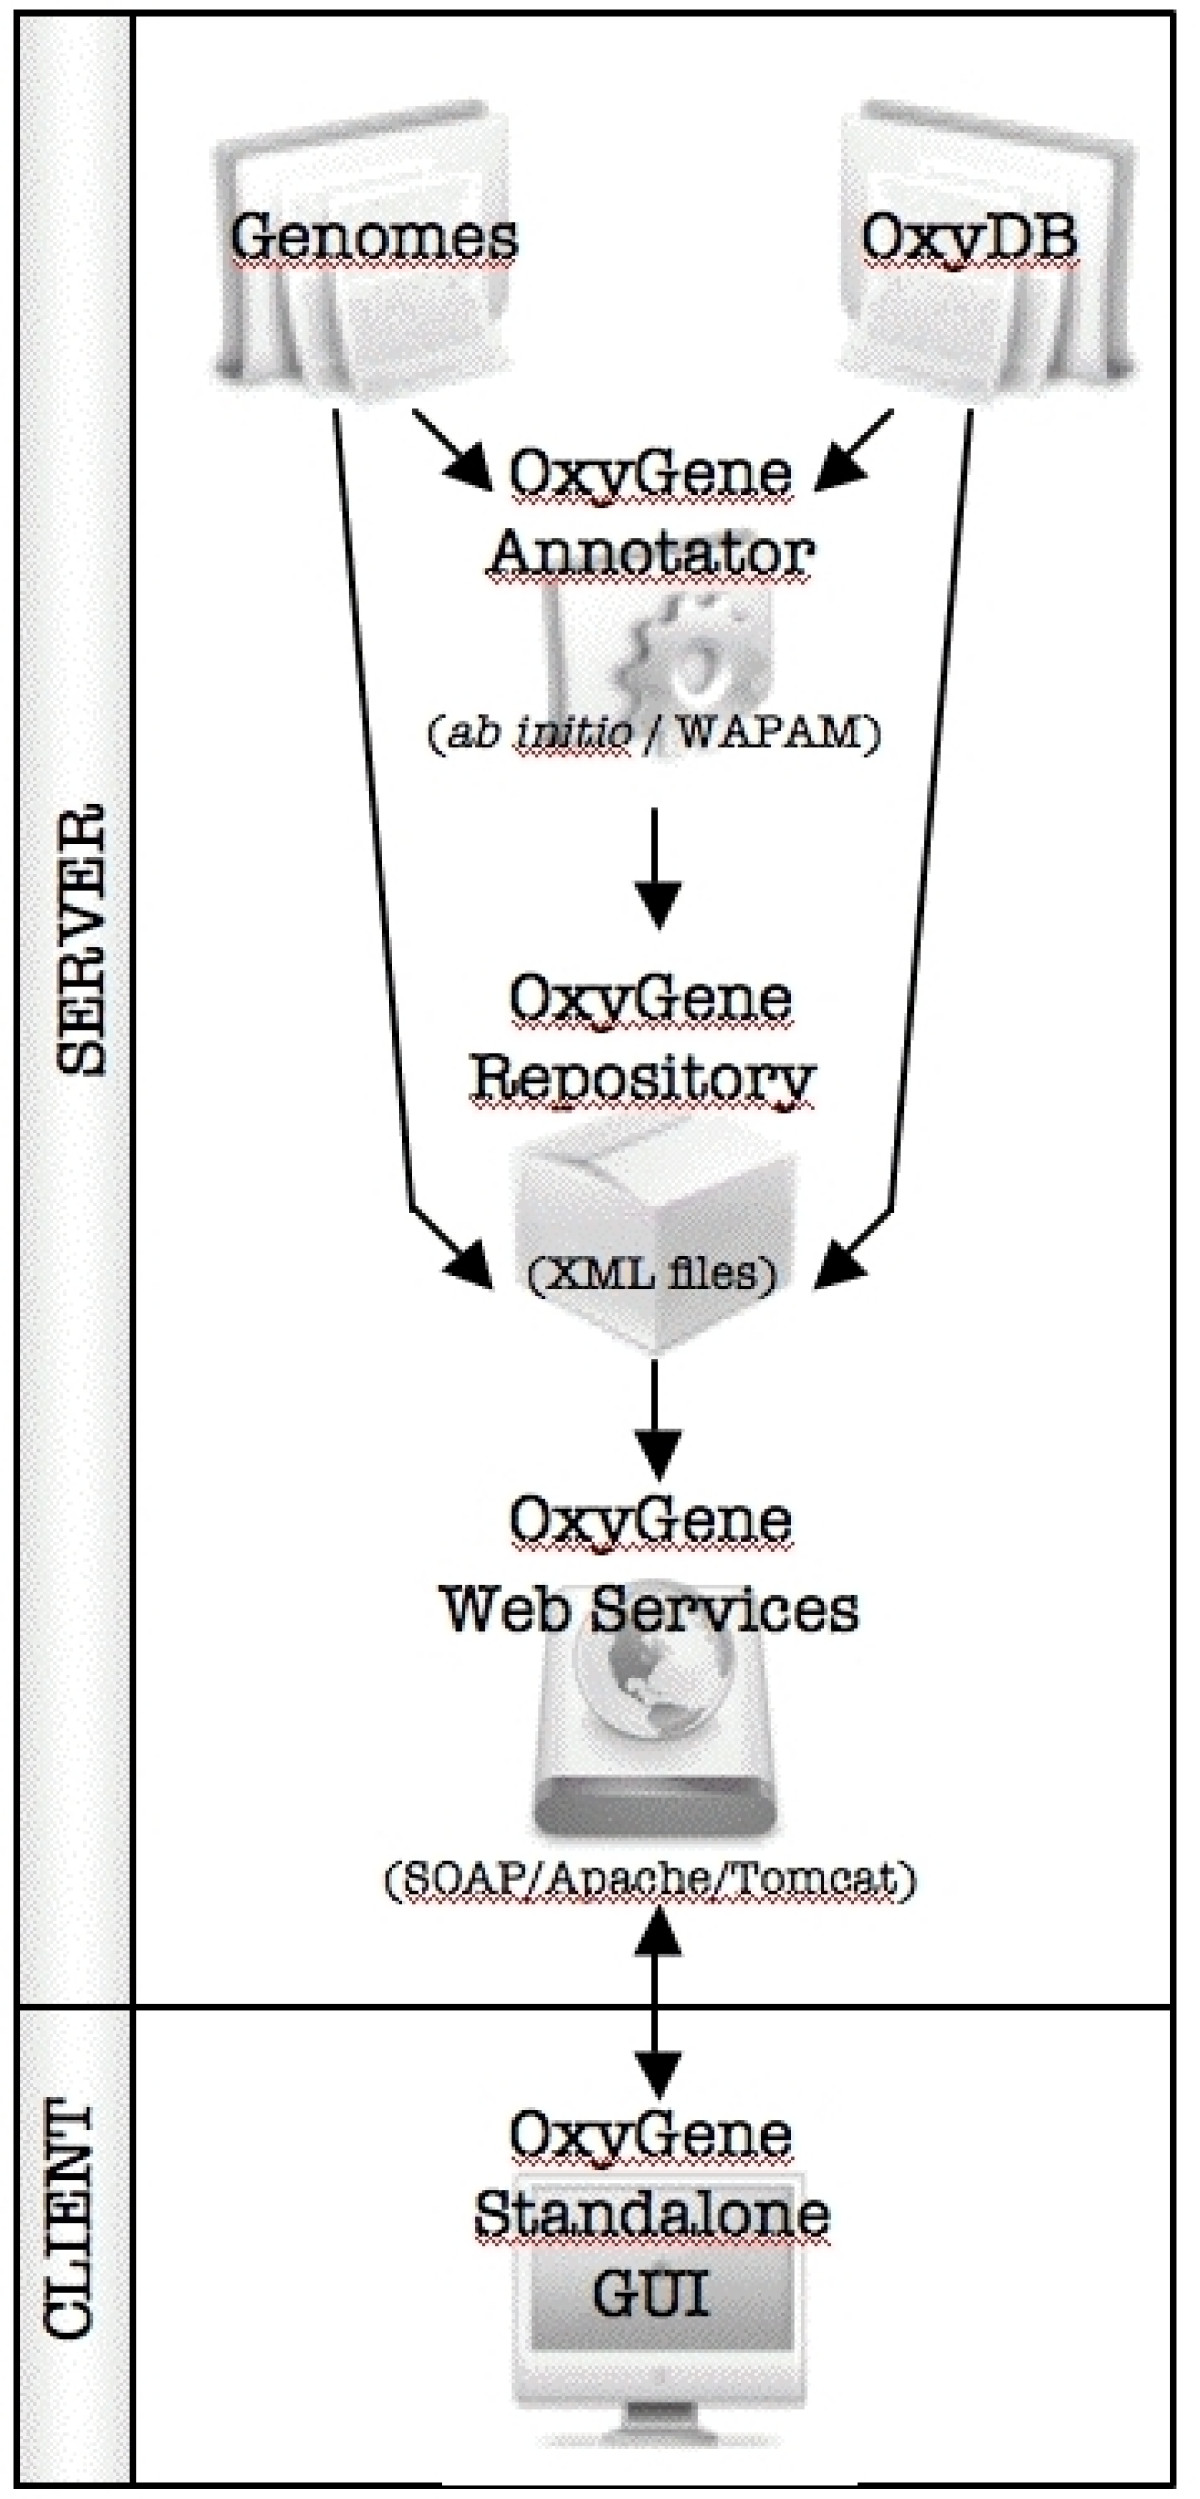 https://static-content.springer.com/image/art%3A10.1186%2F1471-2164-9-637/MediaObjects/12864_2008_Article_1830_Fig1_HTML.jpg